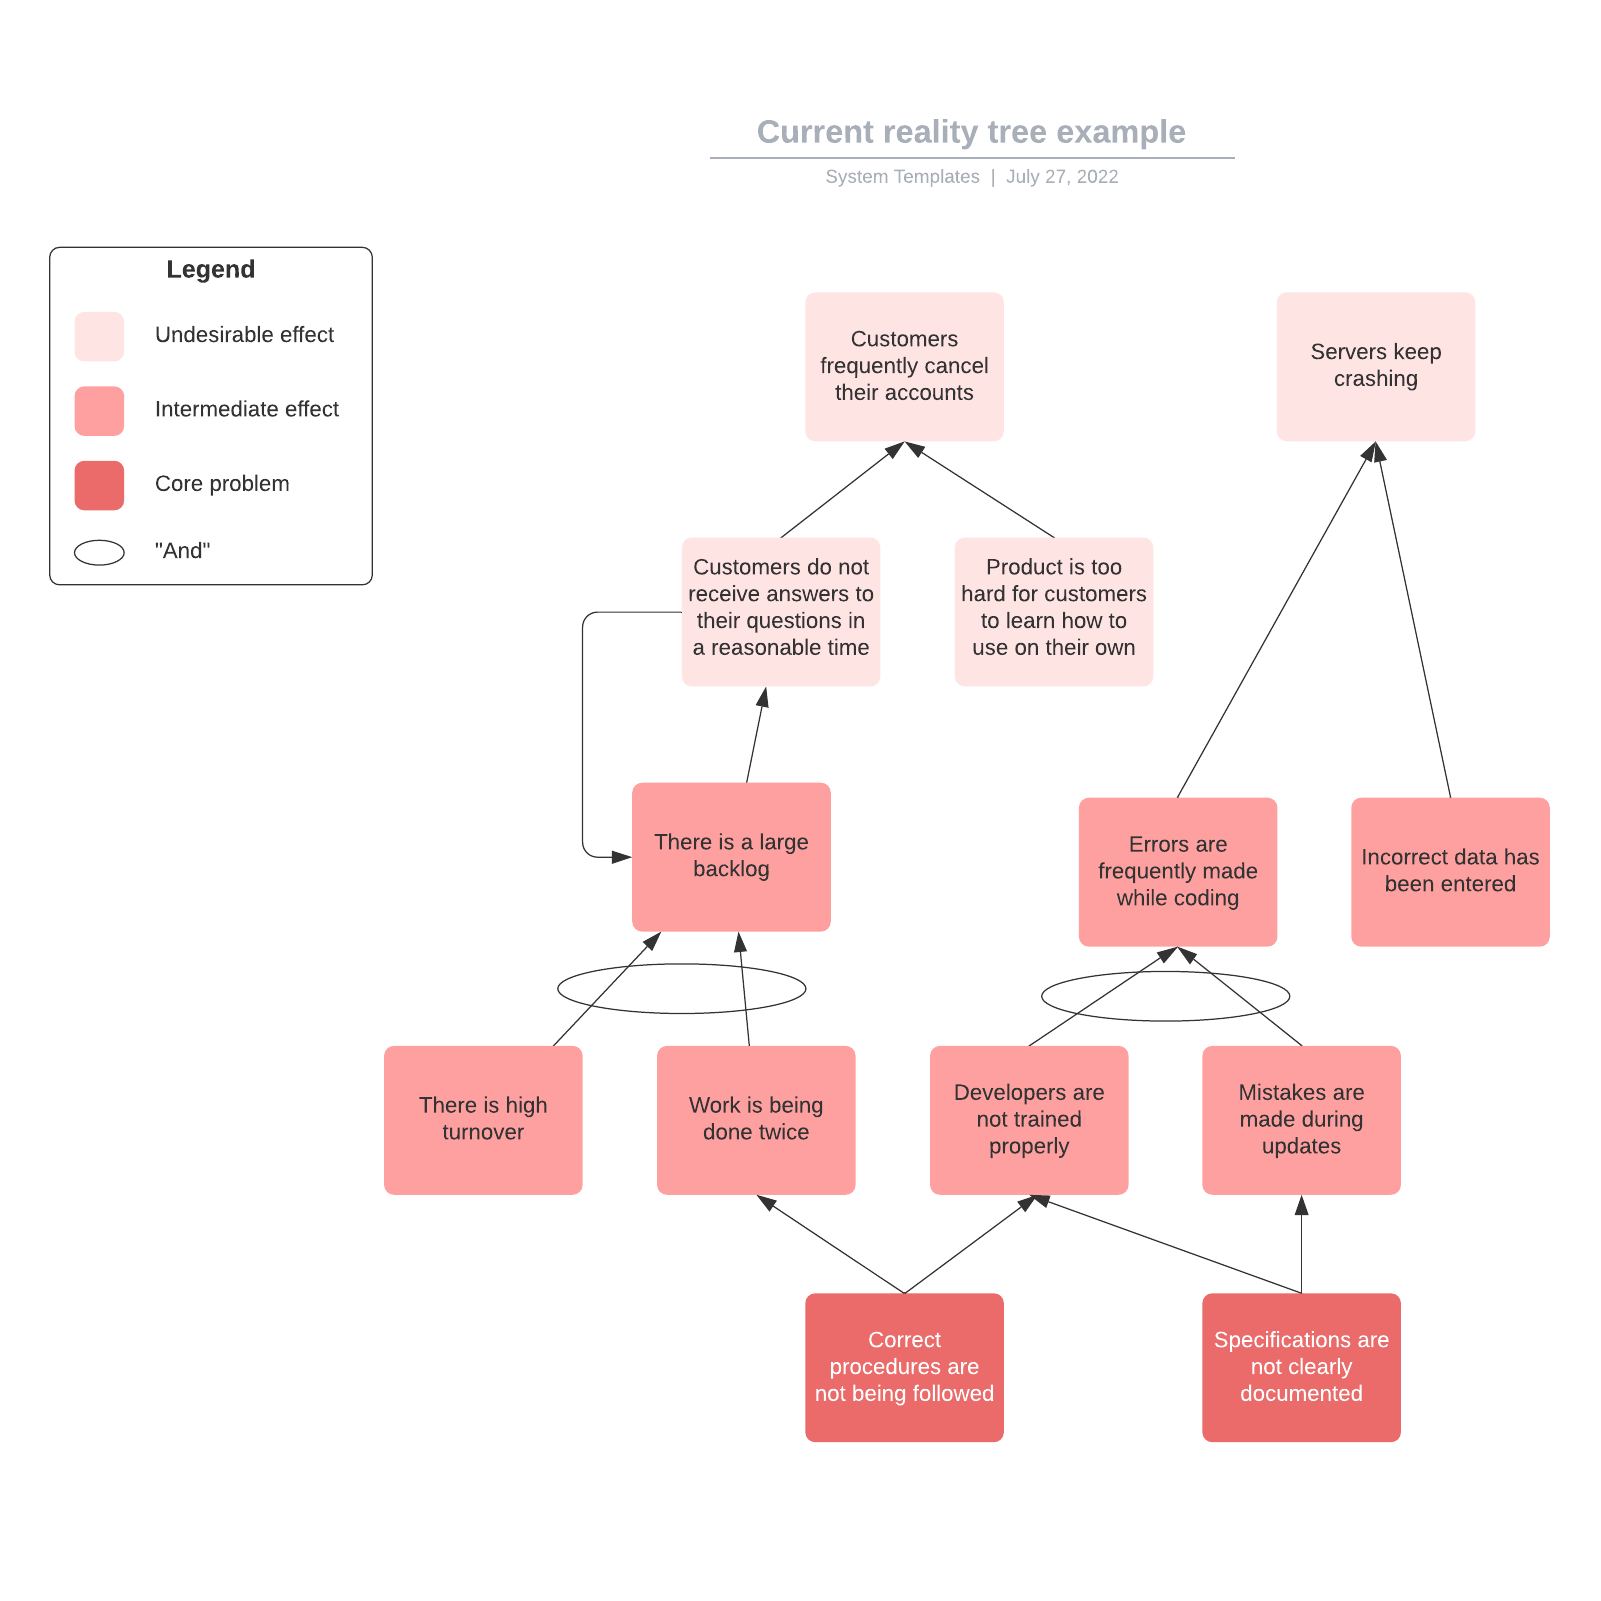 Current reality tree example